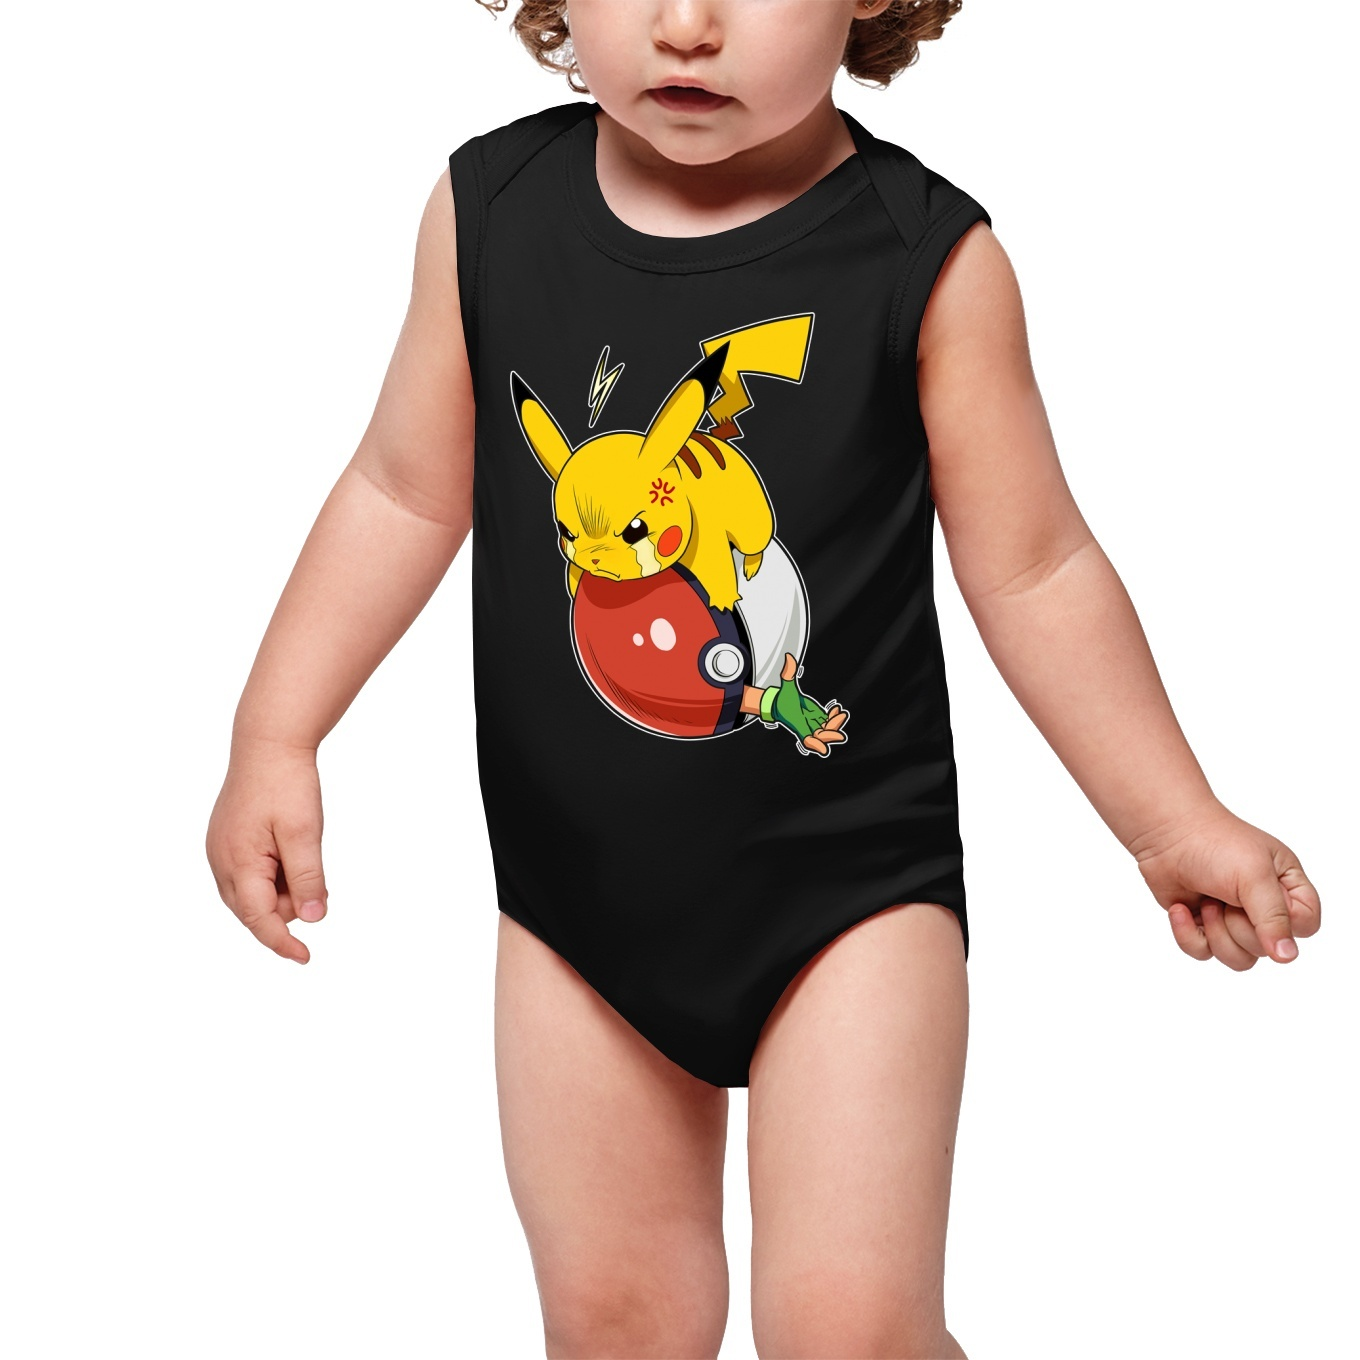 Sleeveless Baby Bodysuits